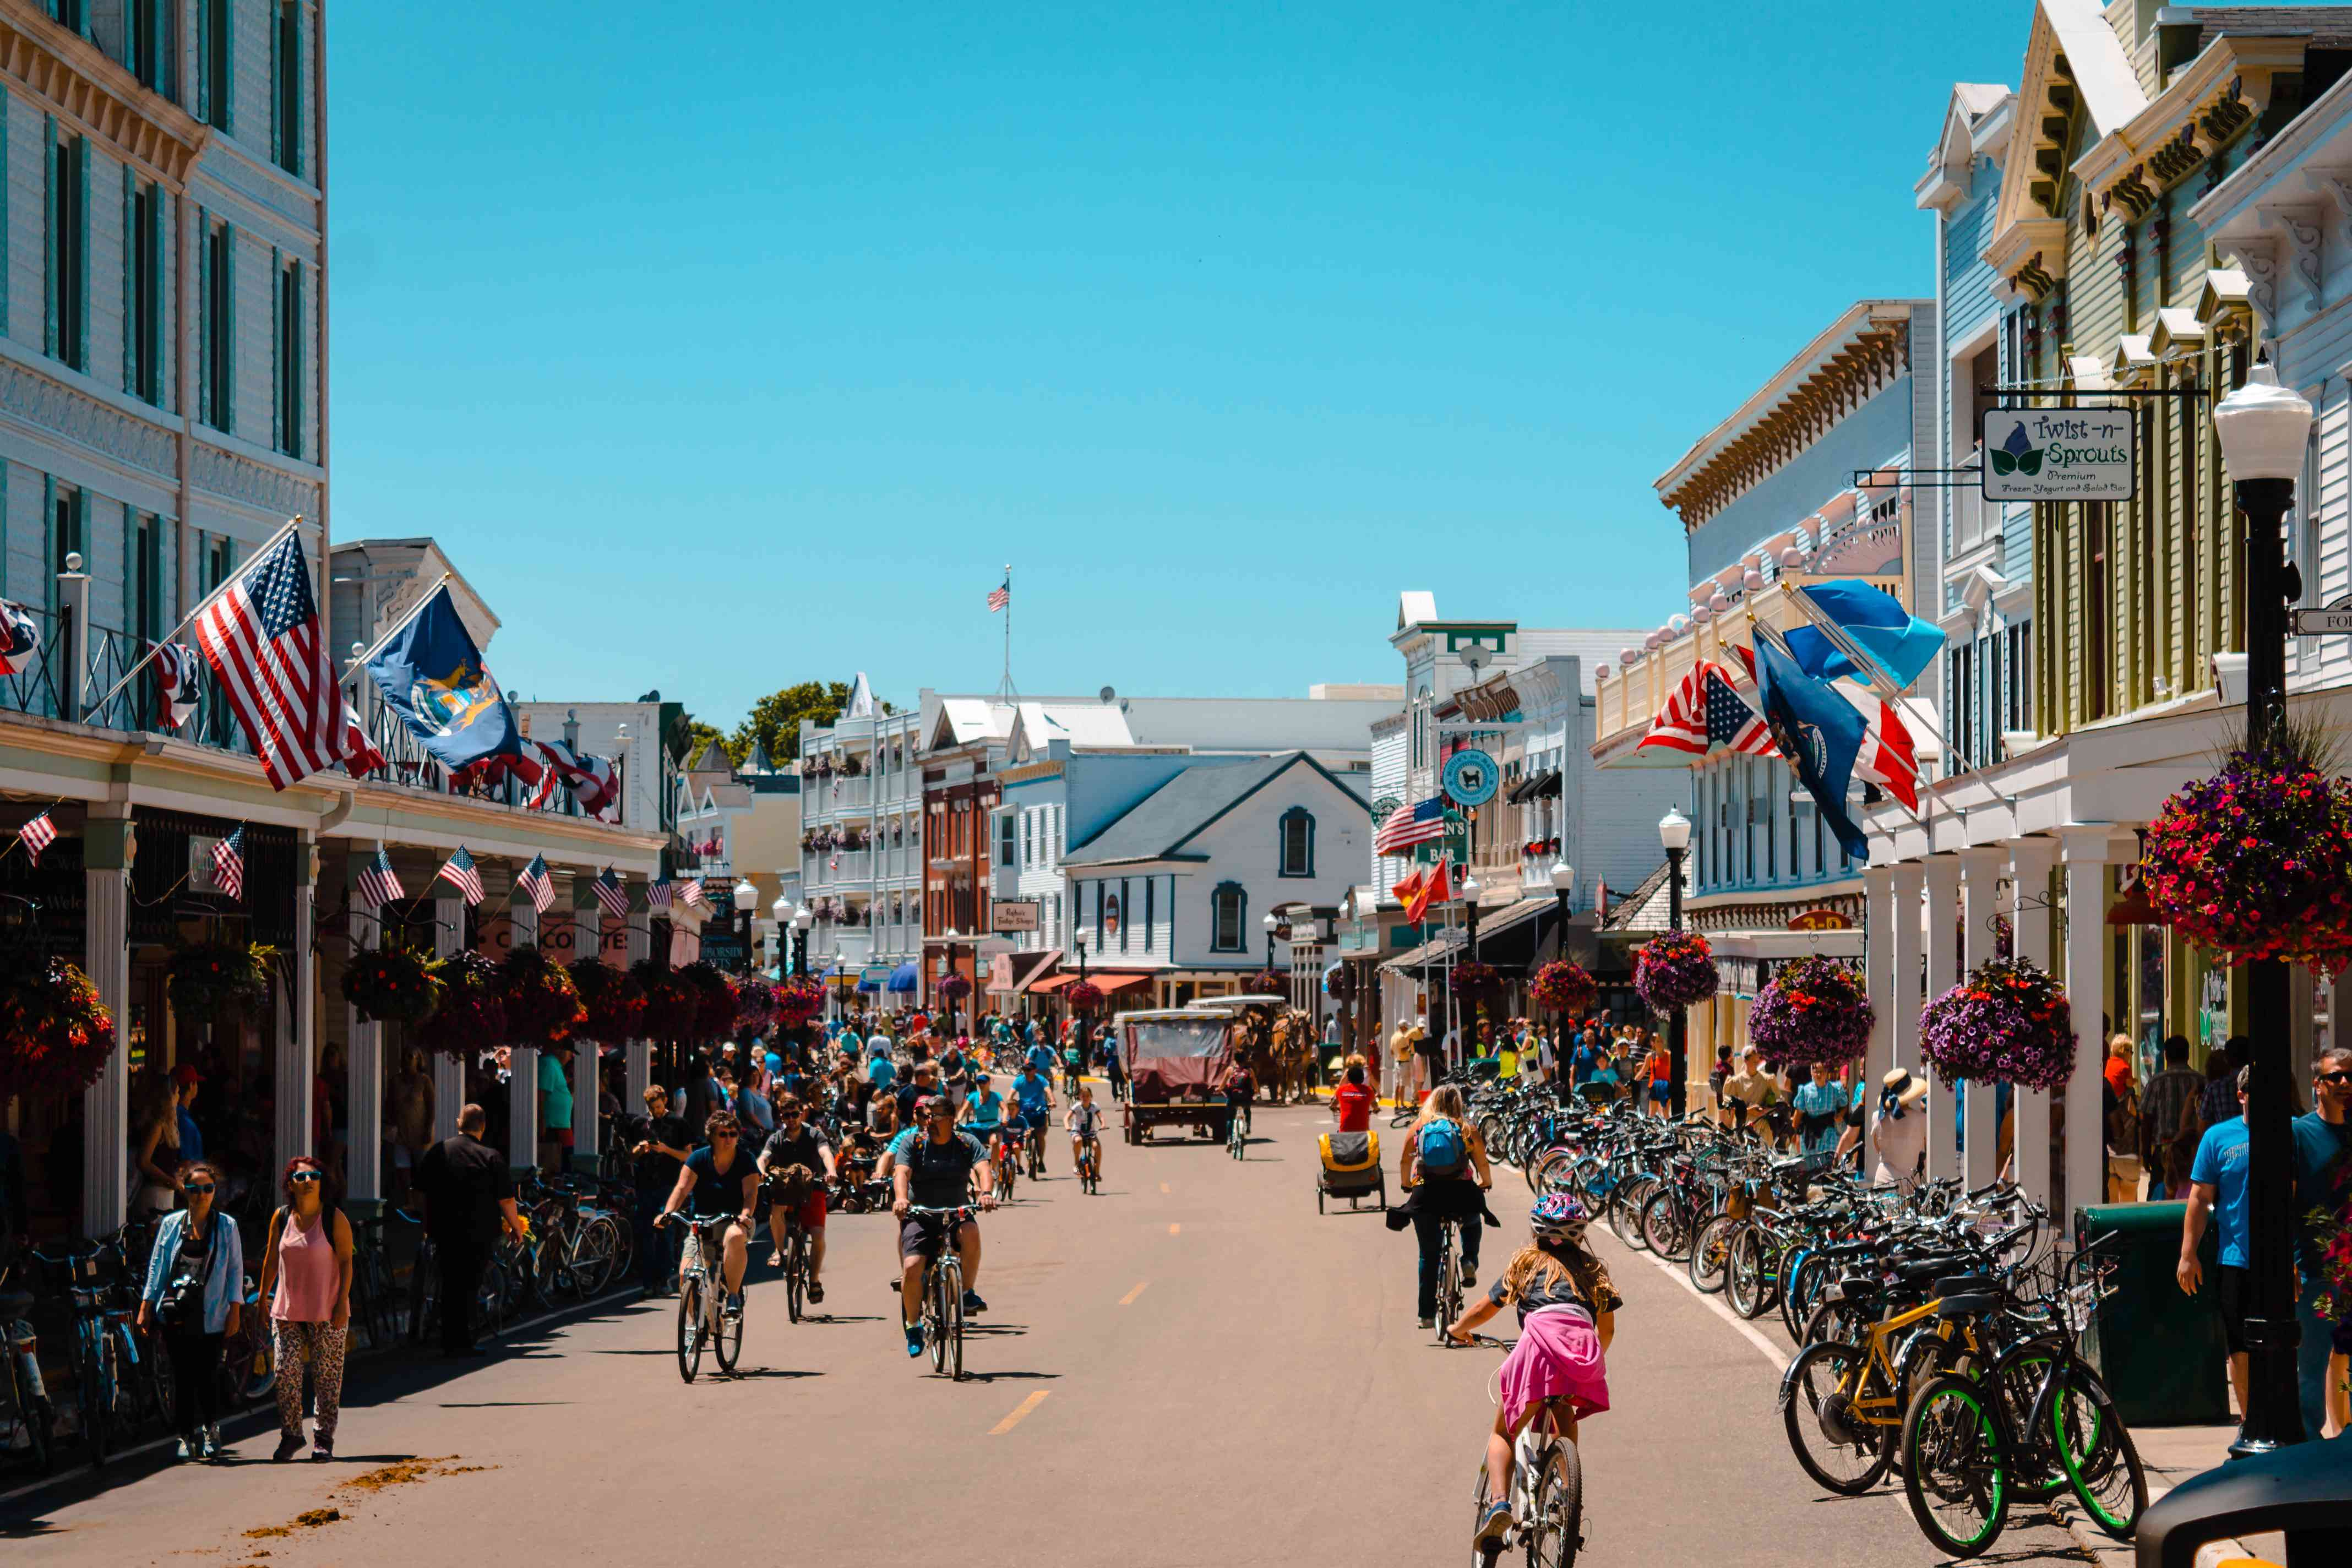 Downtown Mackinac Island street with a bunch of people riding bikes